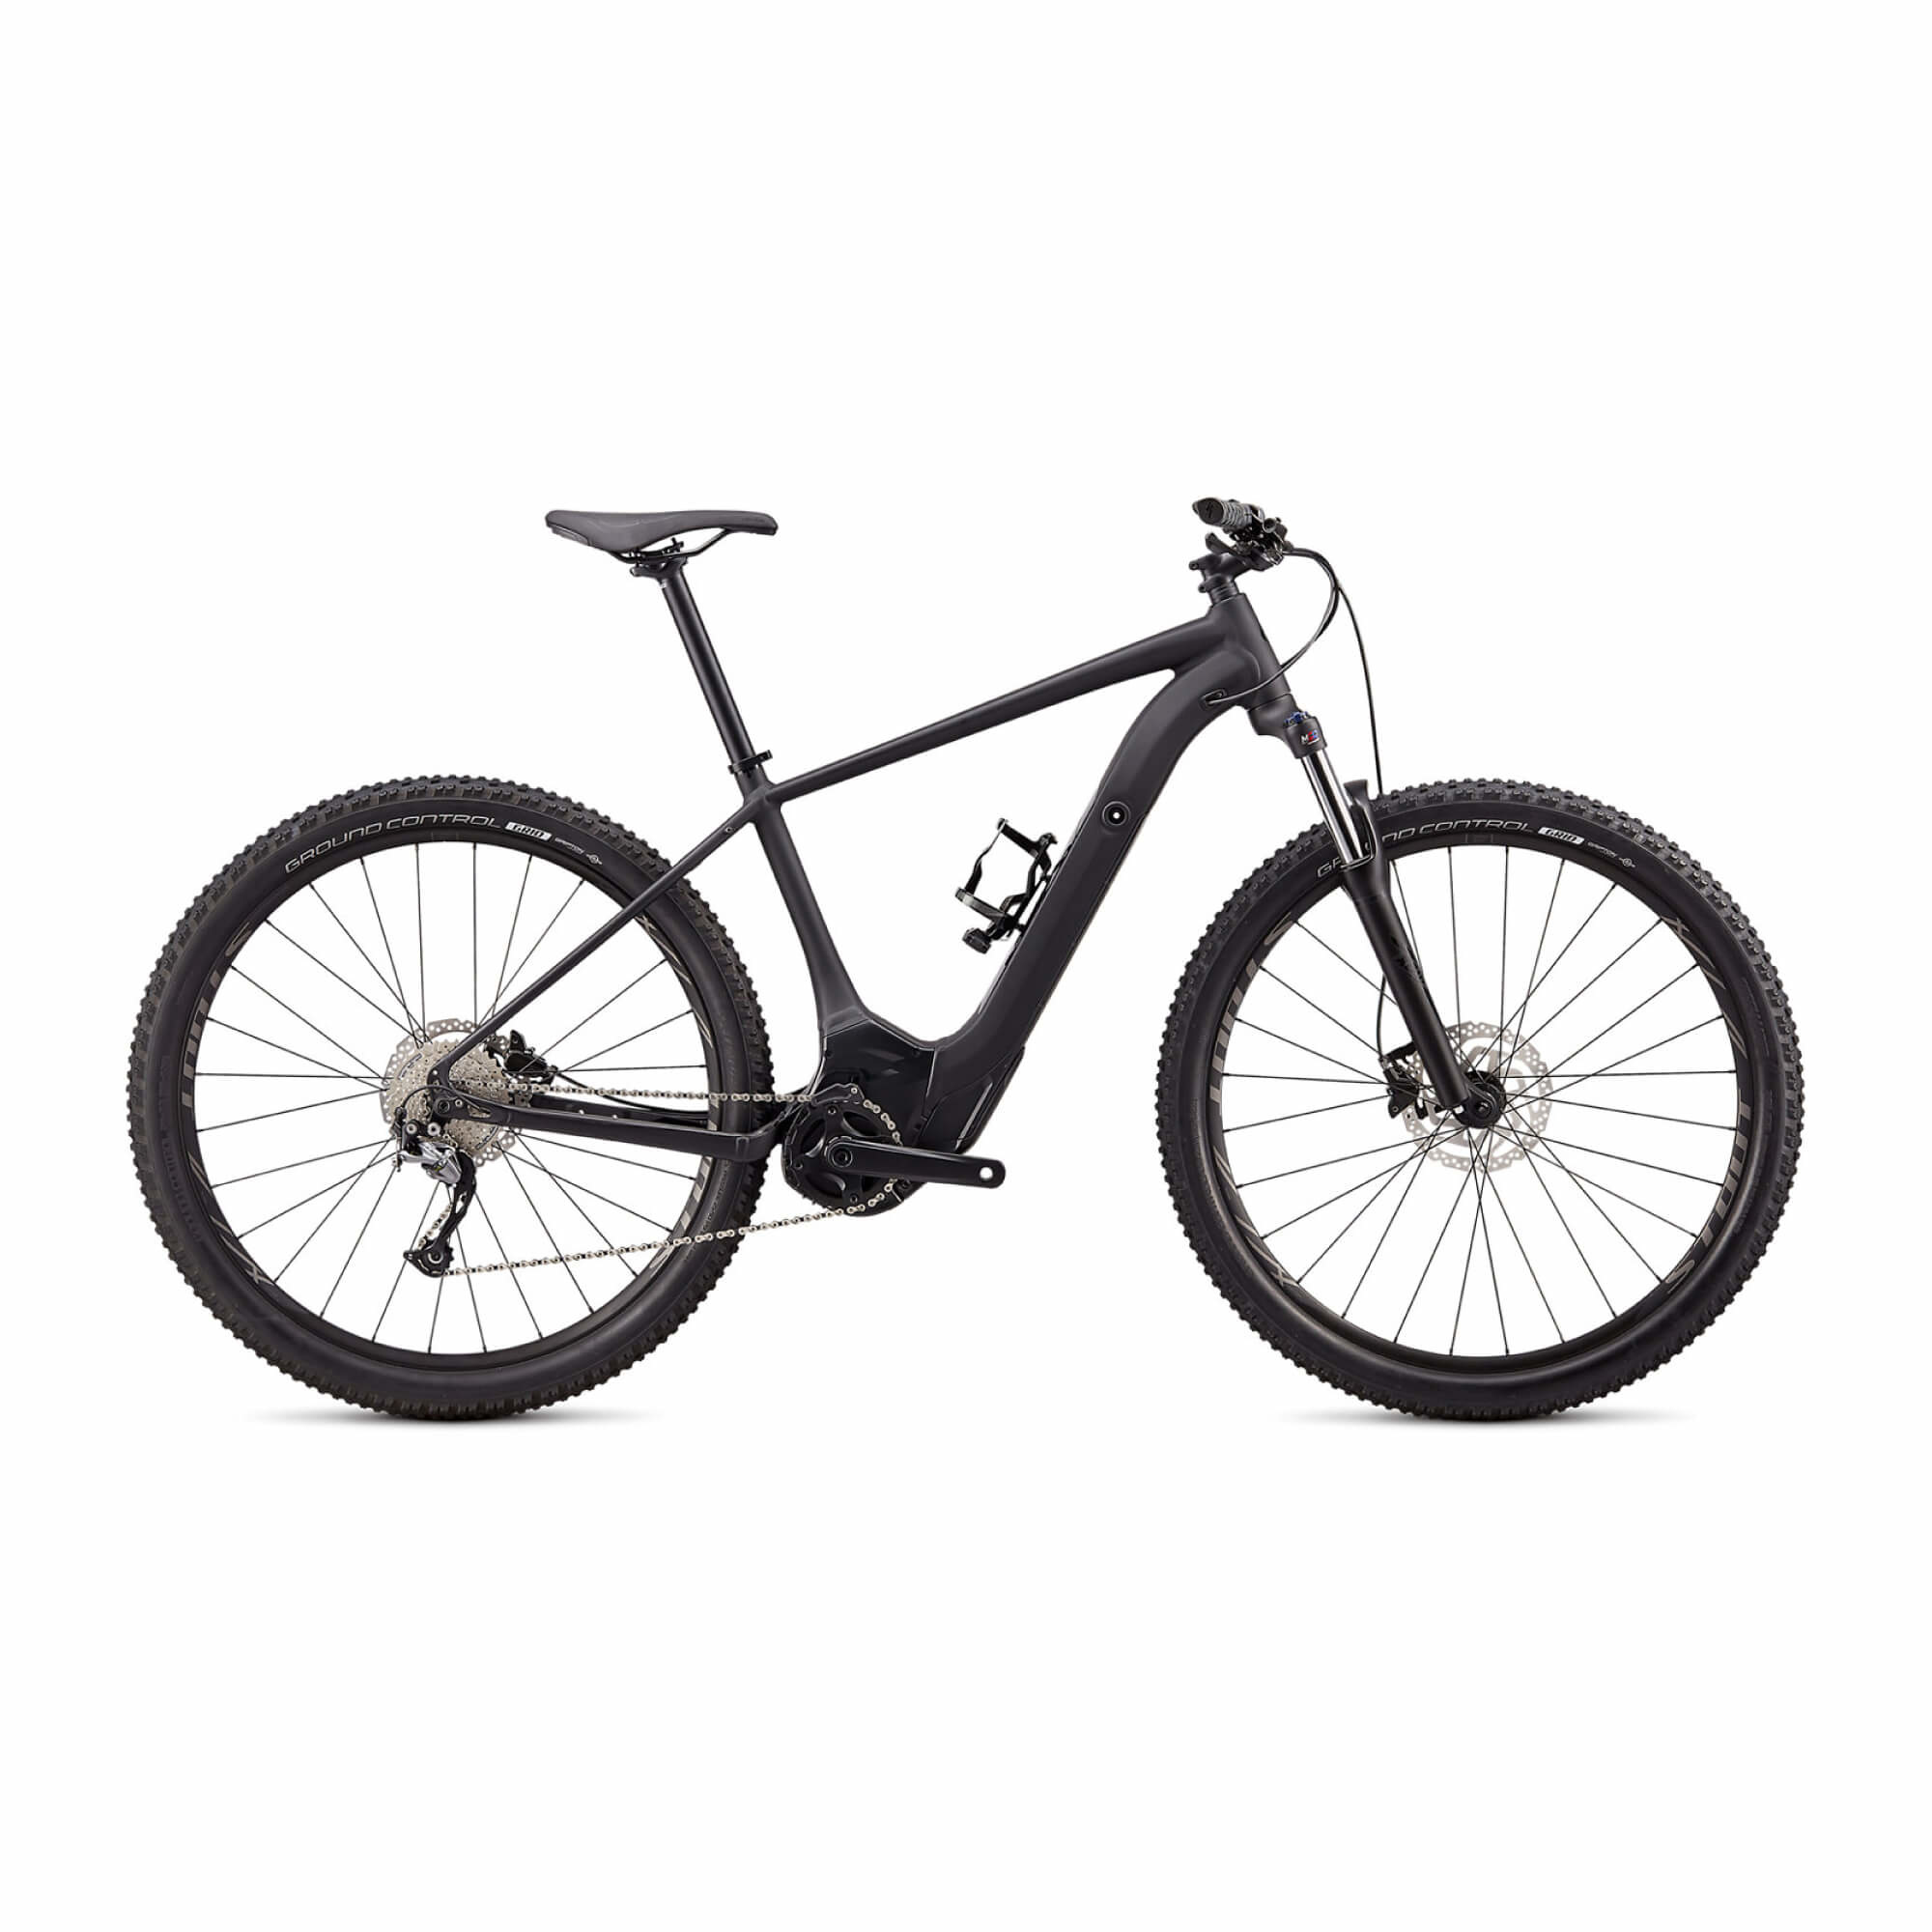 Turbo Levo Hardtail 29 2020-1